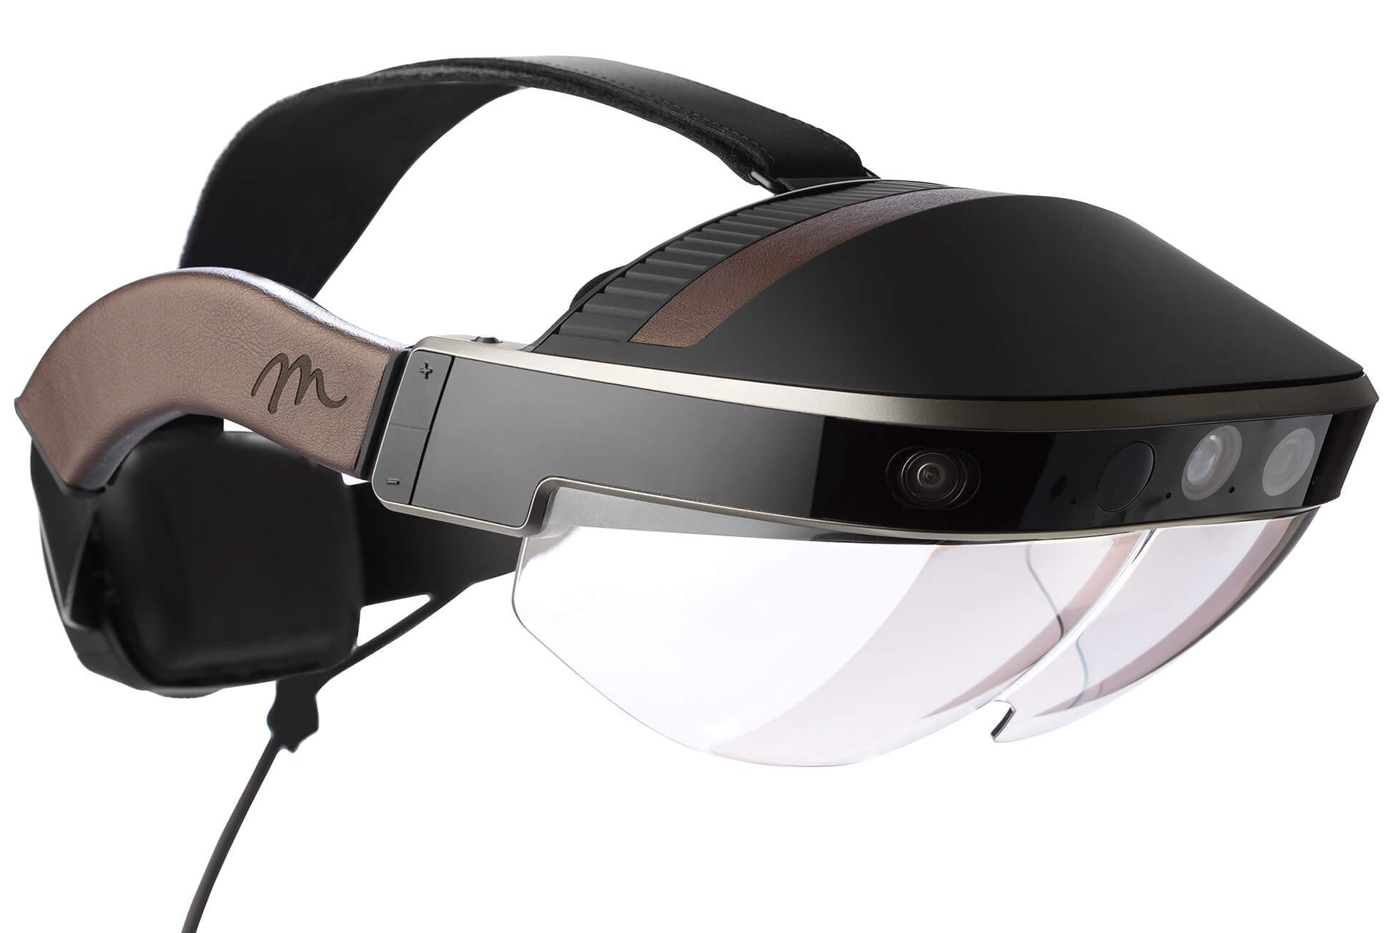 Meta 2 AR Headset - Side View